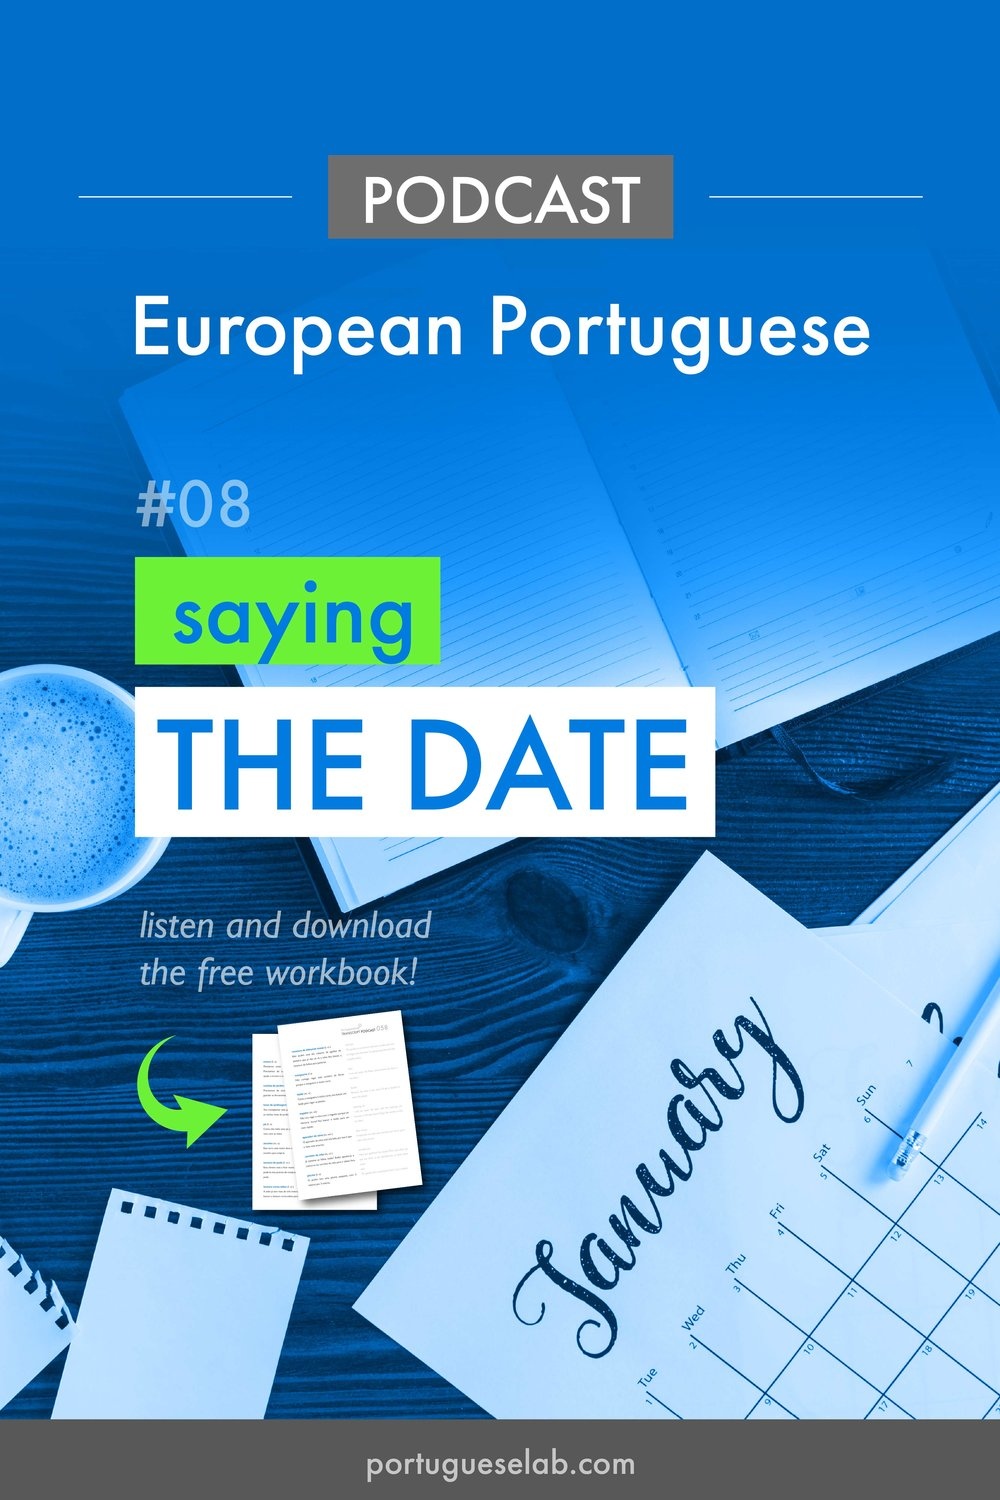 Portuguese-Lab-Podcast-EuropeanPortuguese-08-Saying-the-date.jpg